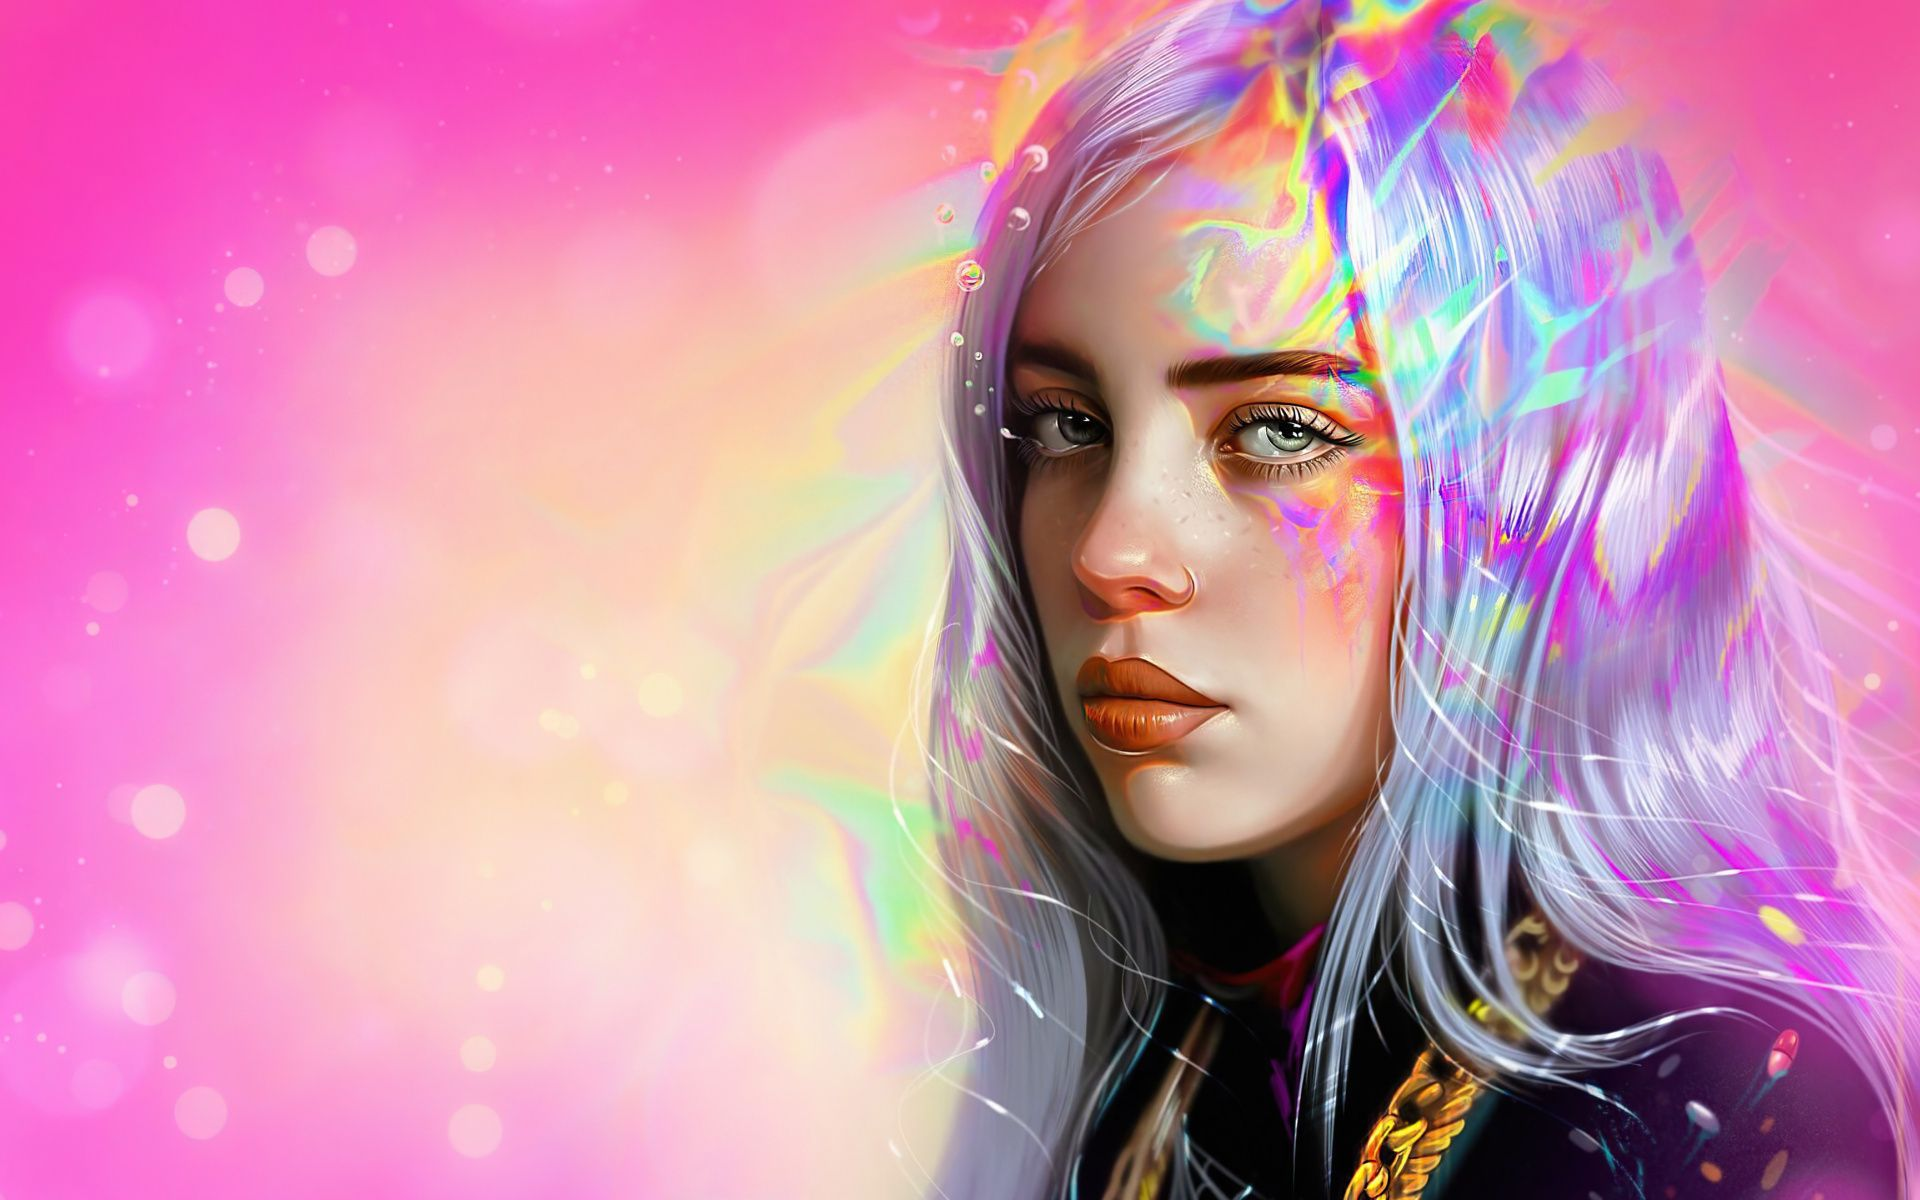 1920x1200 Fan Art Billie Eilish Wallpaper In 2020 Billie Eilish Eyes Wallpaper Singer Art